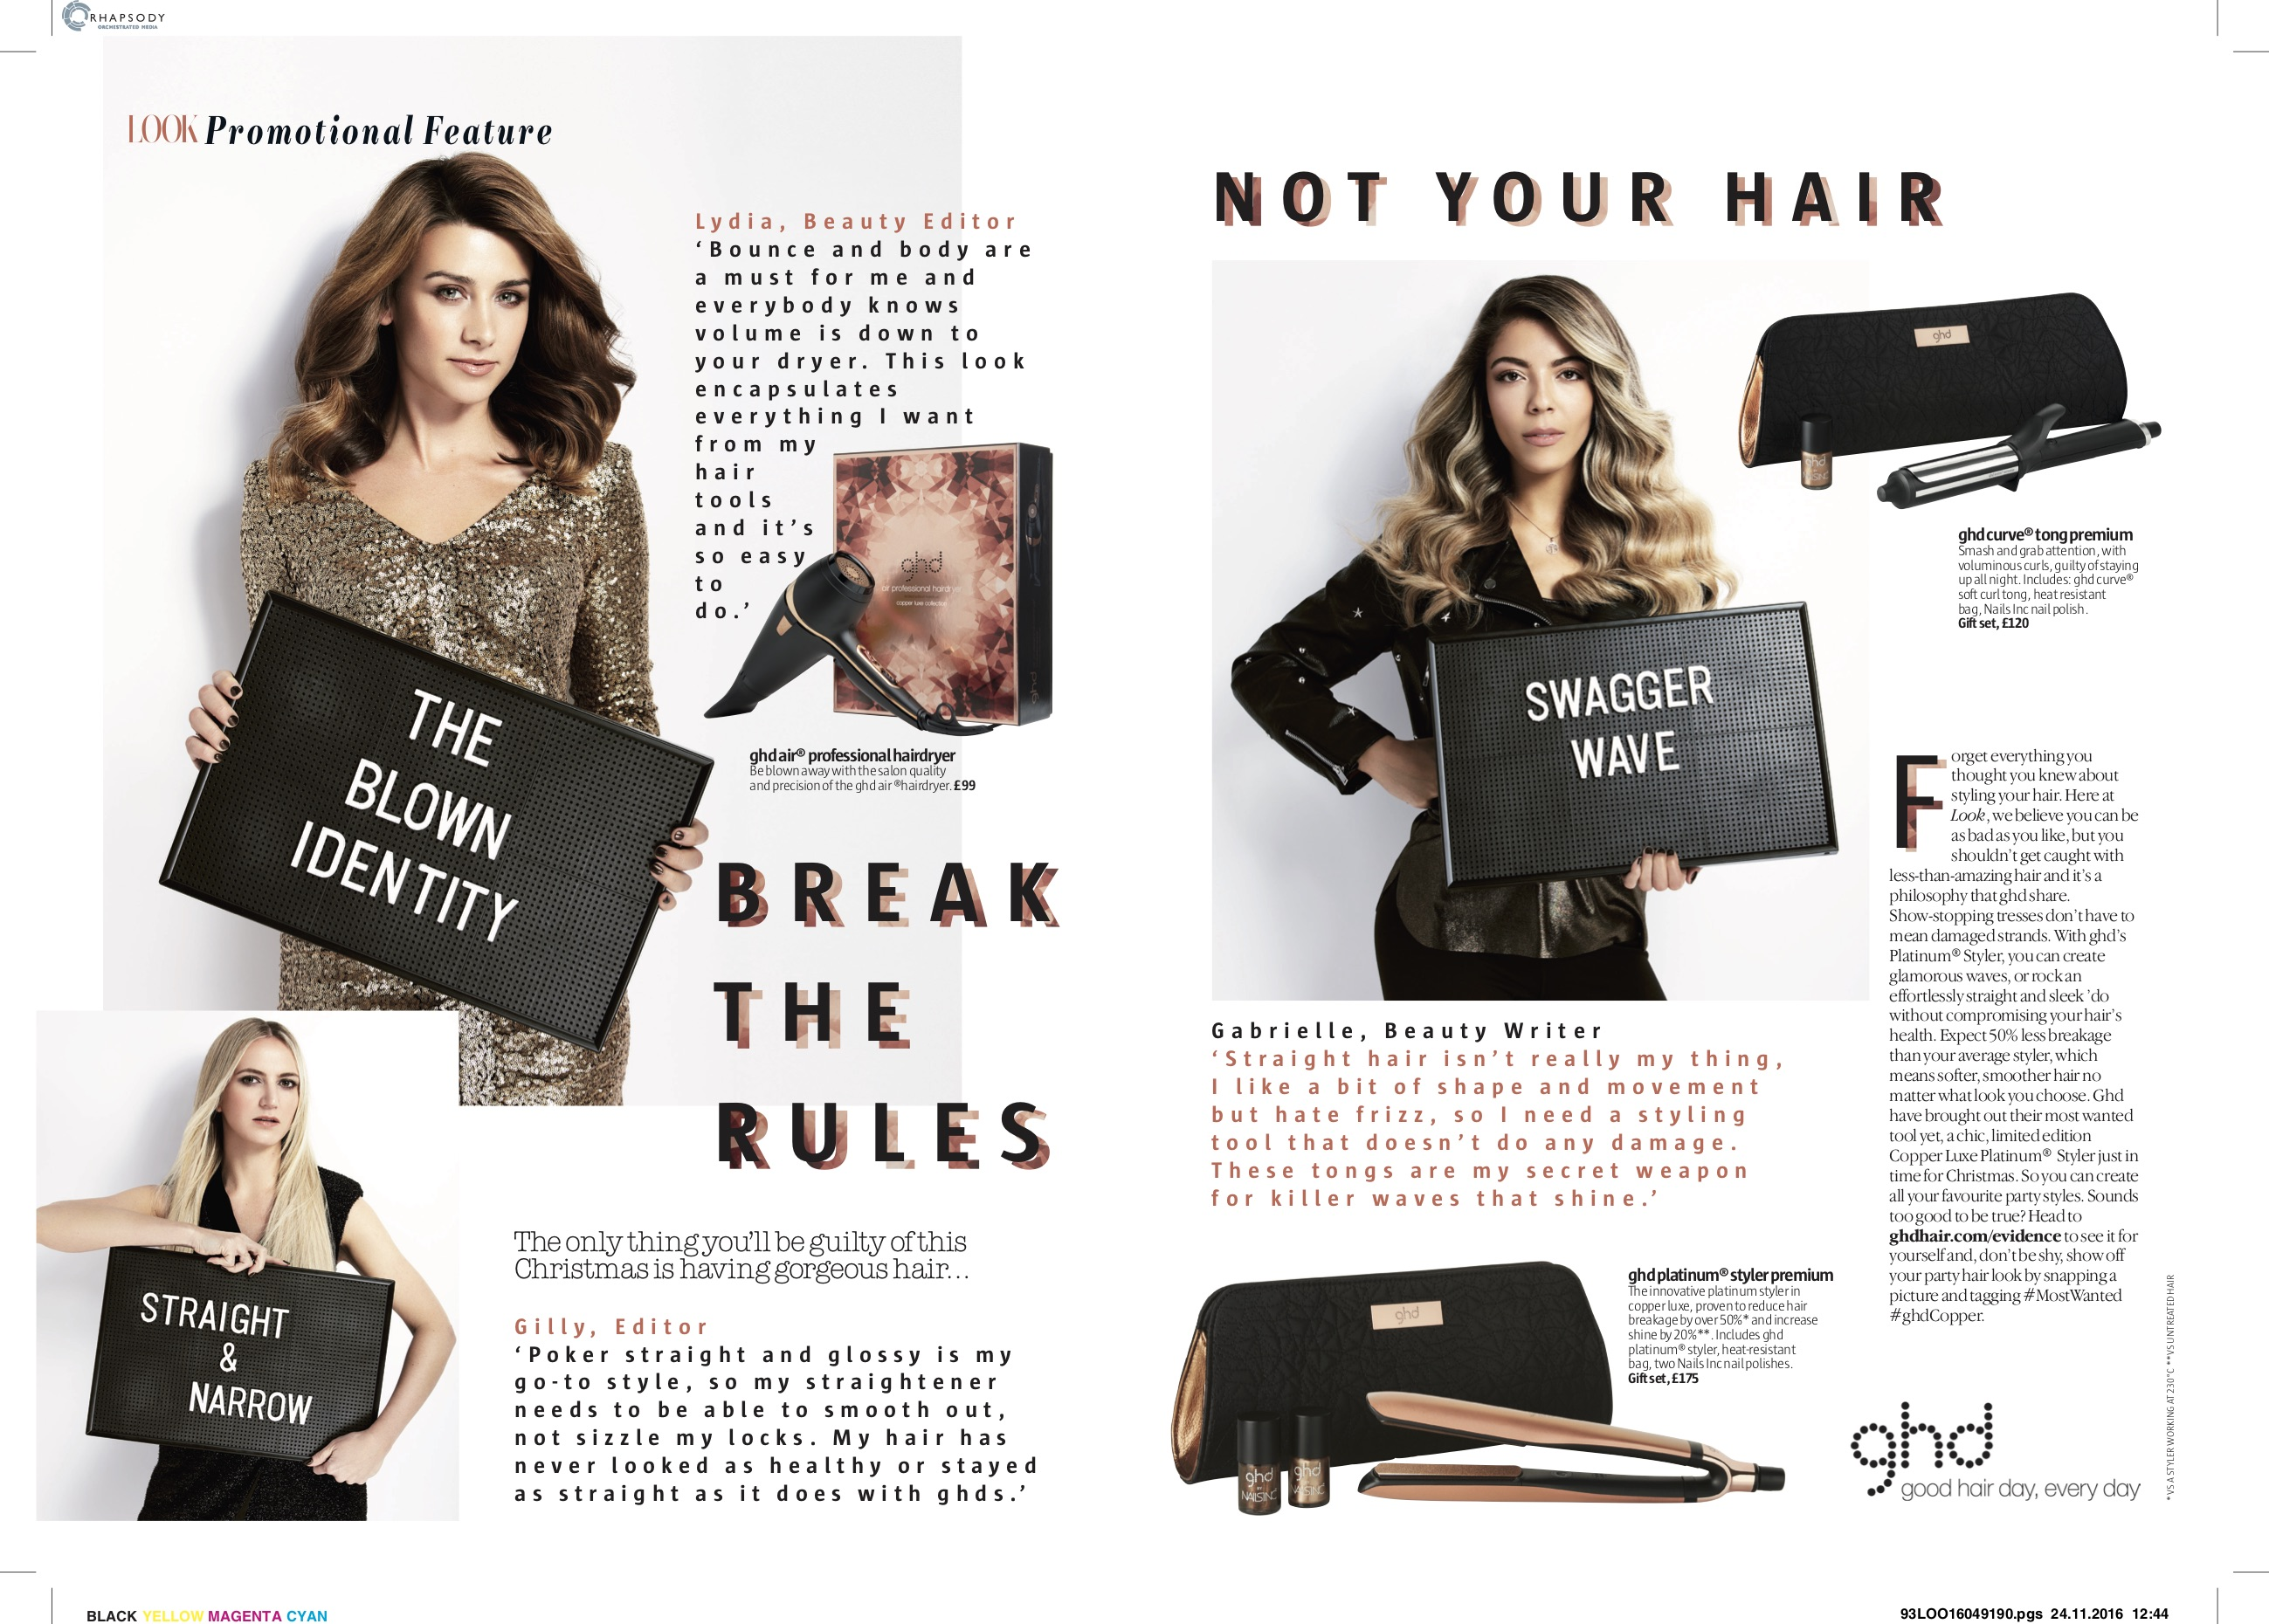 ghd for Look